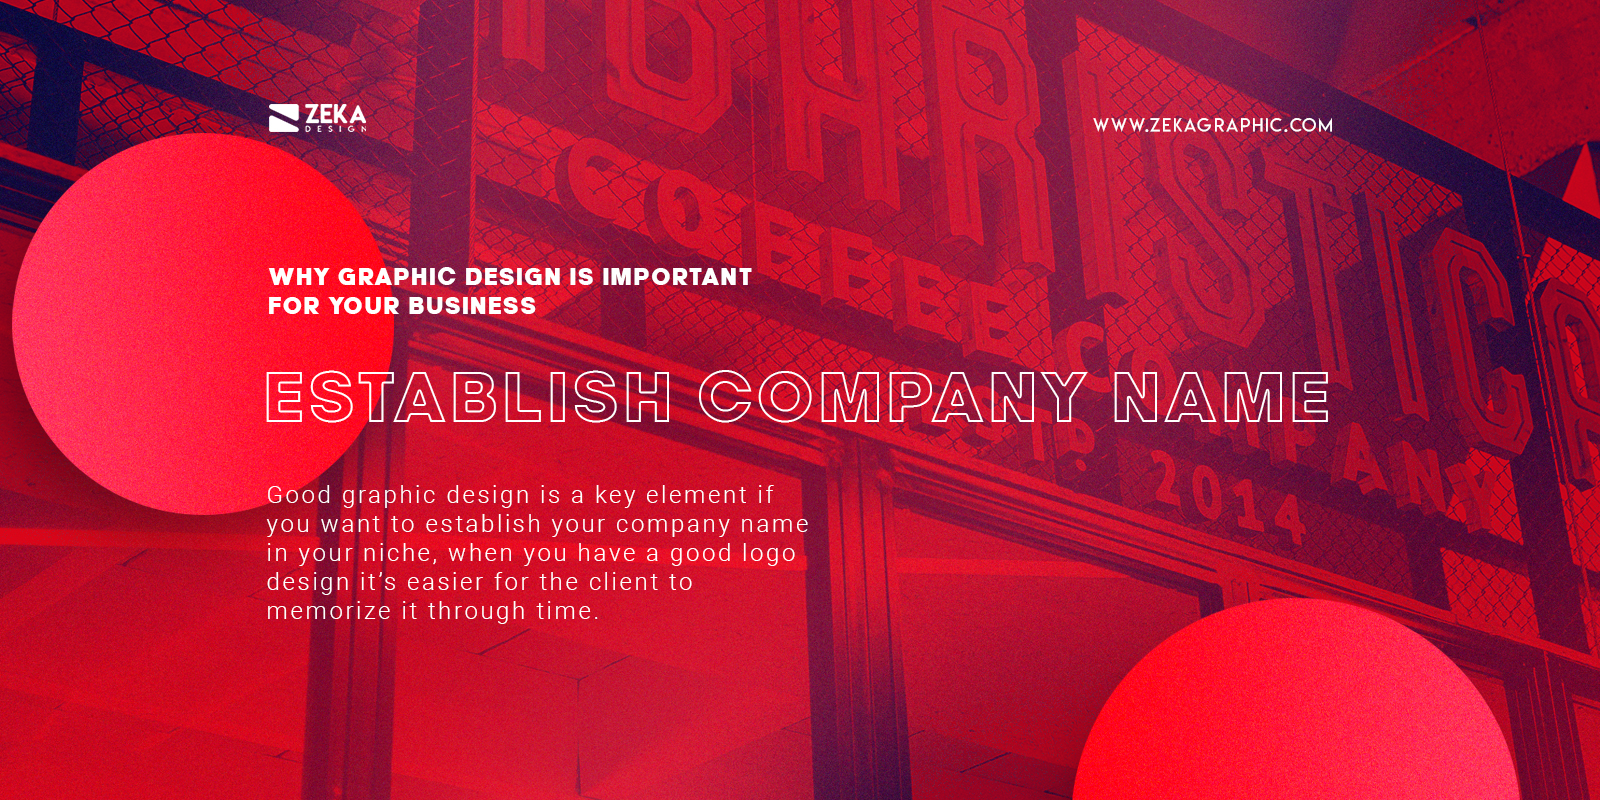 Establish Your Company Name With Graphic Design